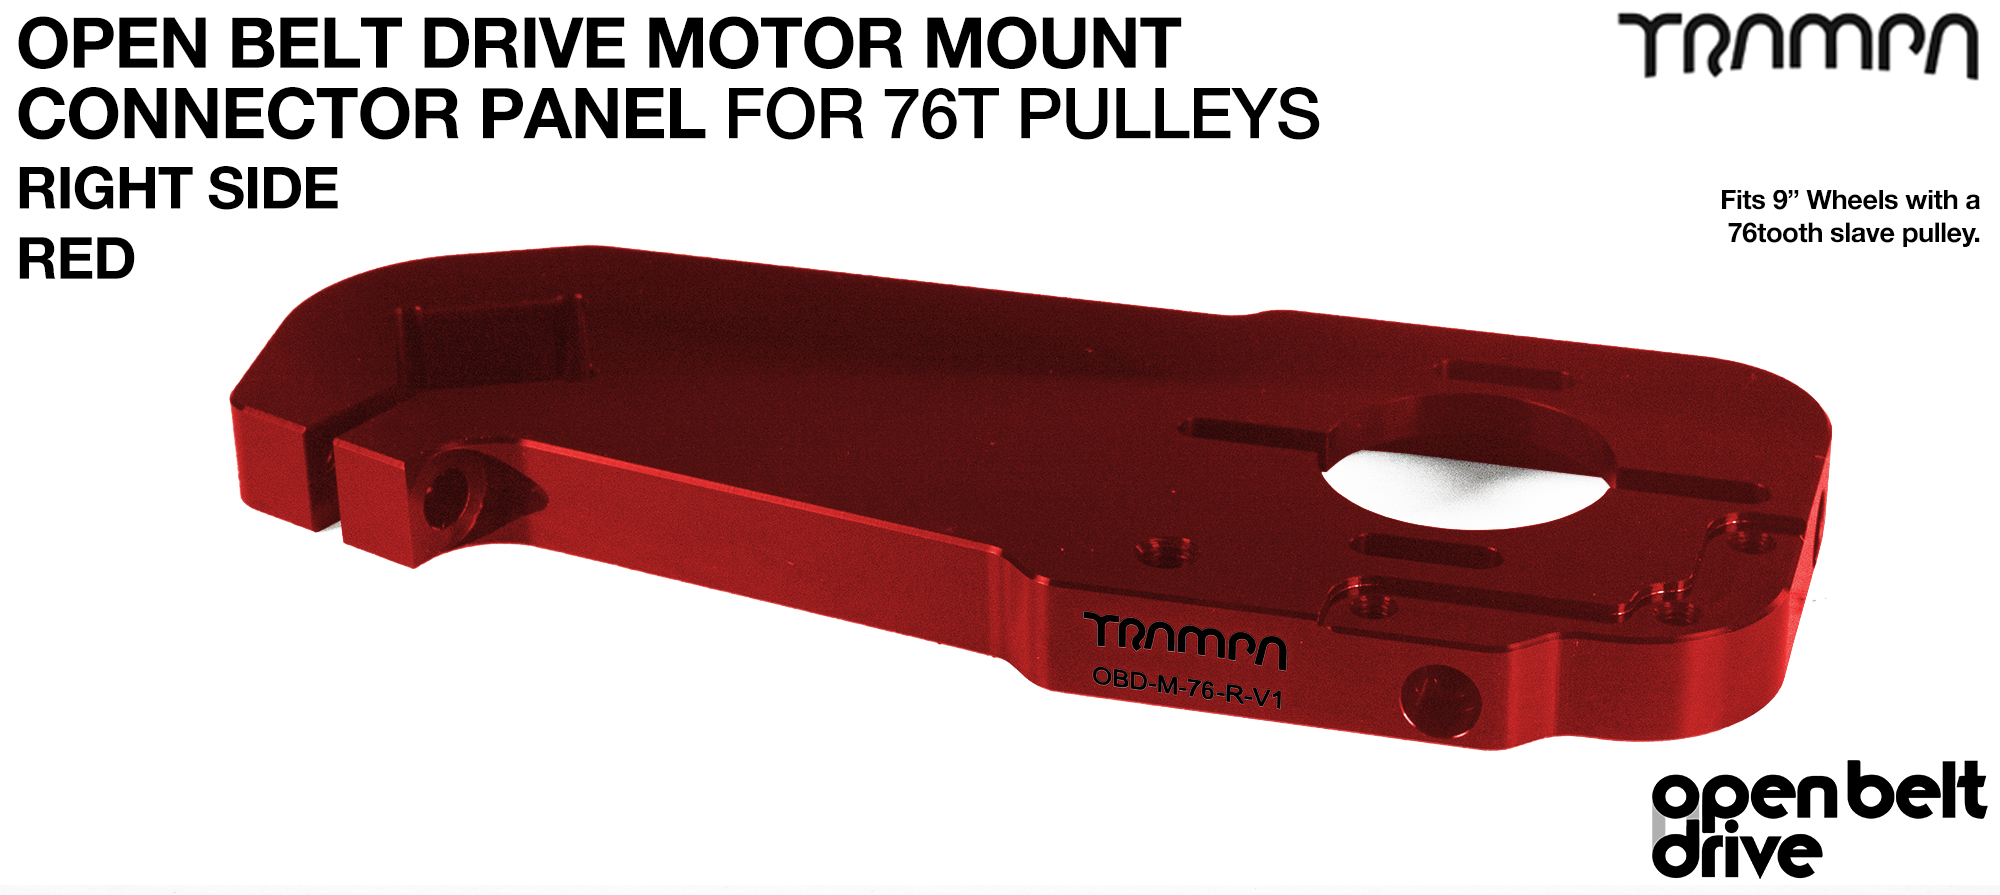 OBD Motor Mount Connector Panel for 76 tooth Pulleys - GOOFY - RED